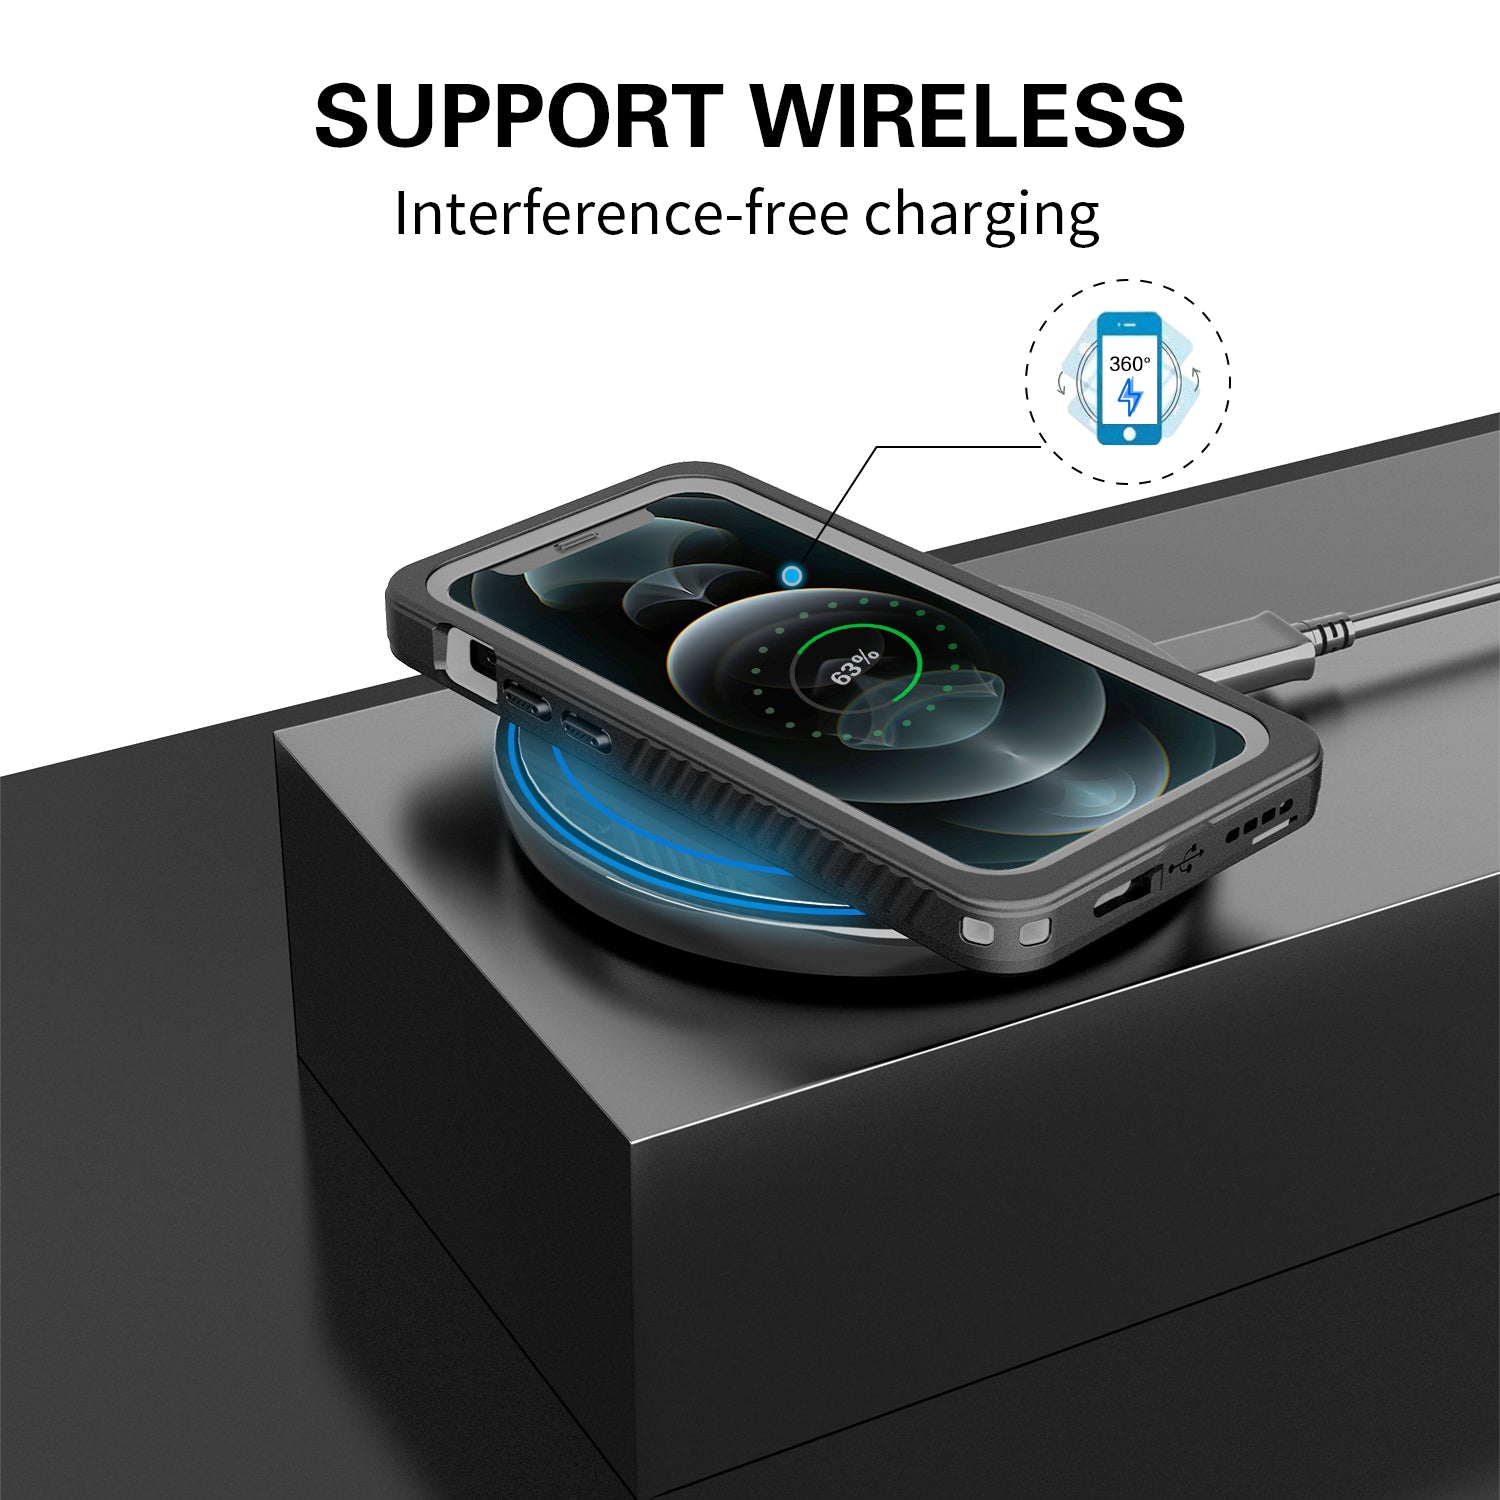 Redpepper_iPhone_12_Pro_supports_wireless_charging_SJ45GJTXLUQV.jpg